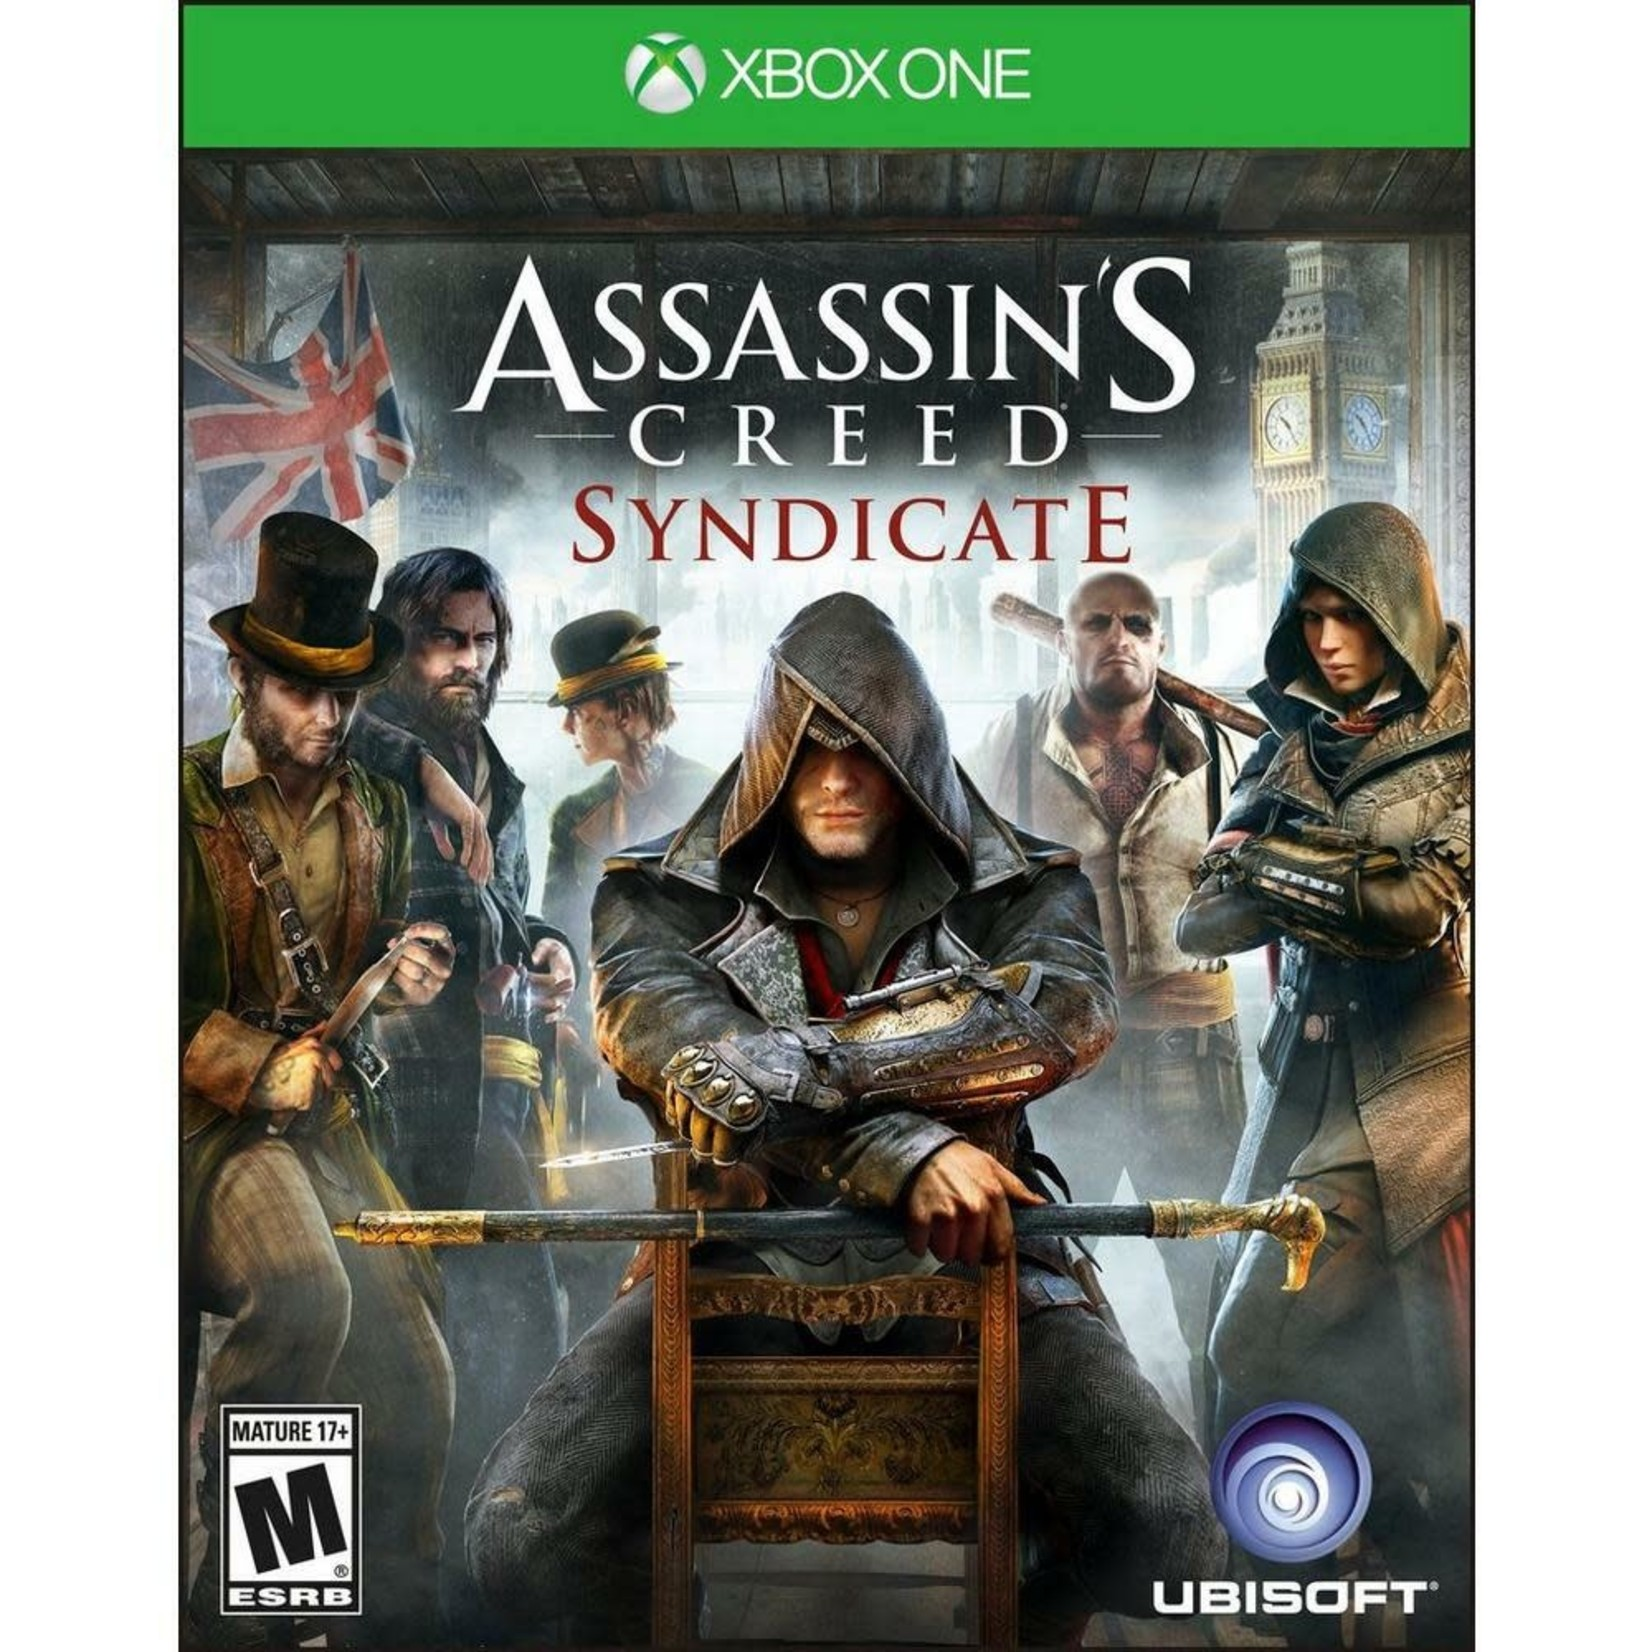 XB1-Assassin's Creed Syndicate